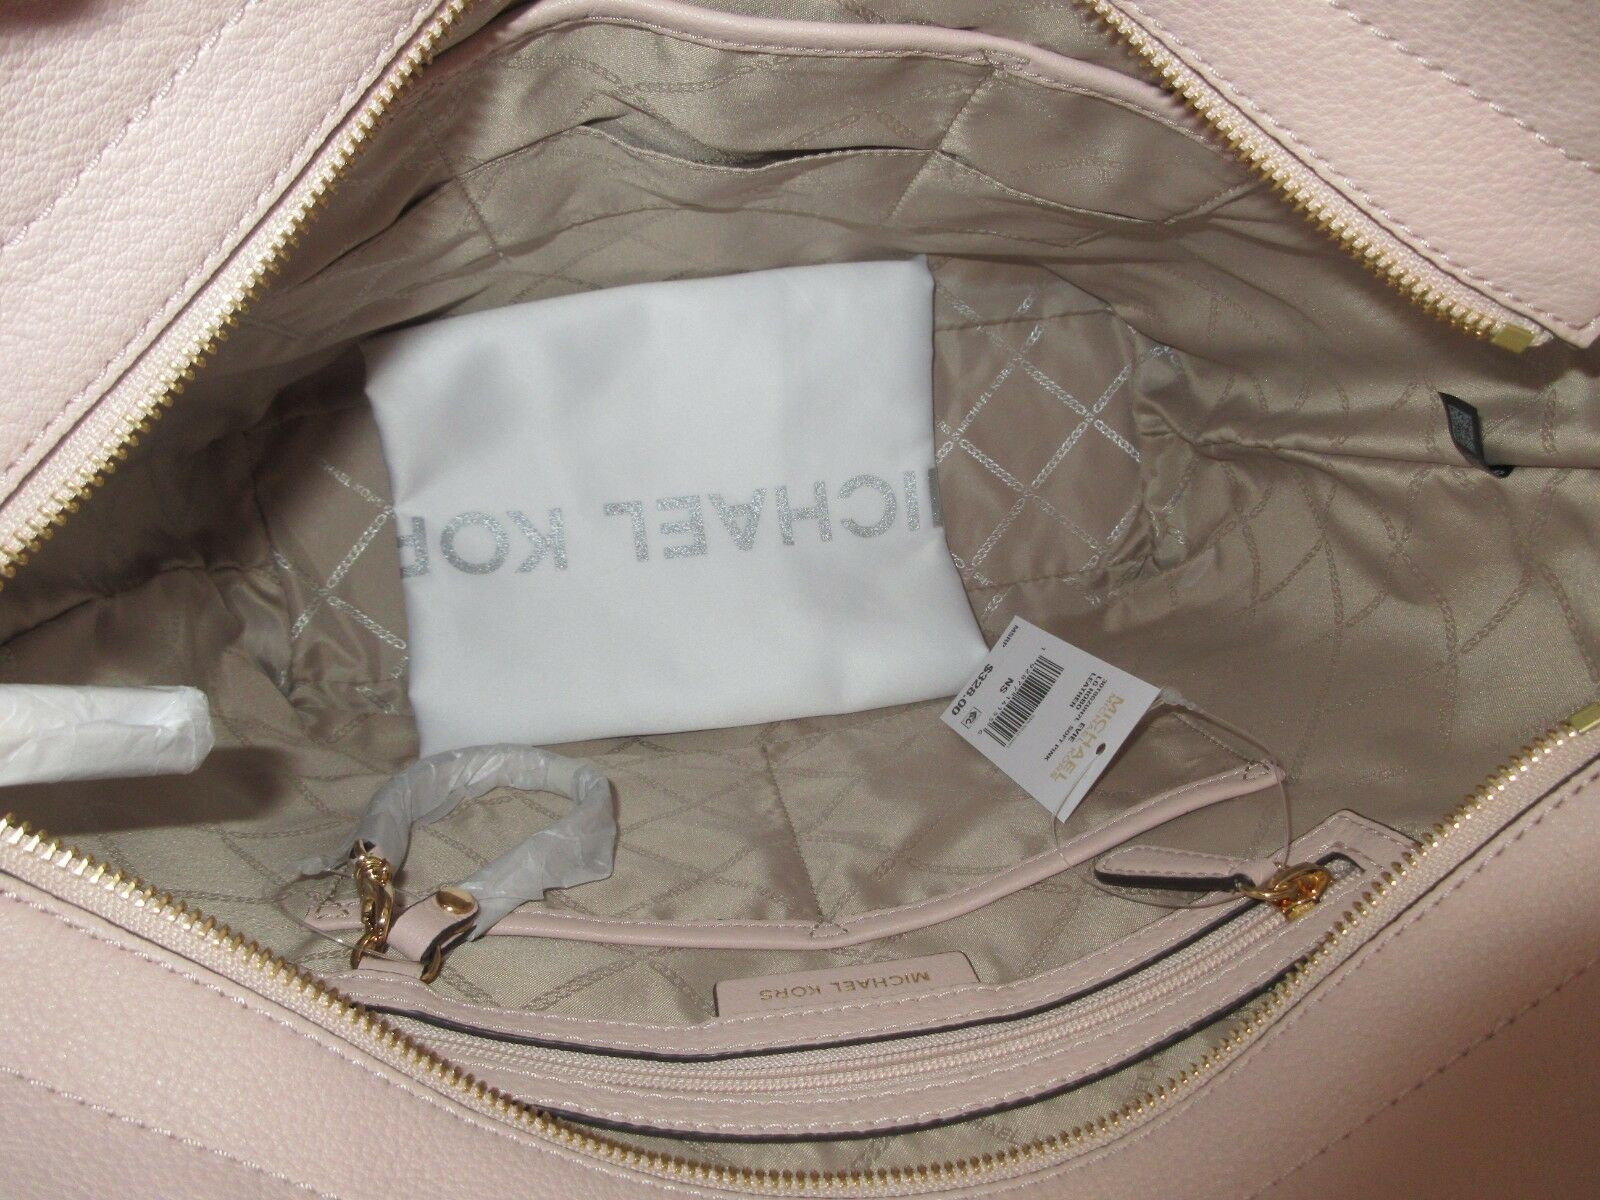 ead9dd357b01 Michael Kors Evie Large Soft Pink Pebbled Leather Hobo 30t8gzuh7l for sale  online | eBay